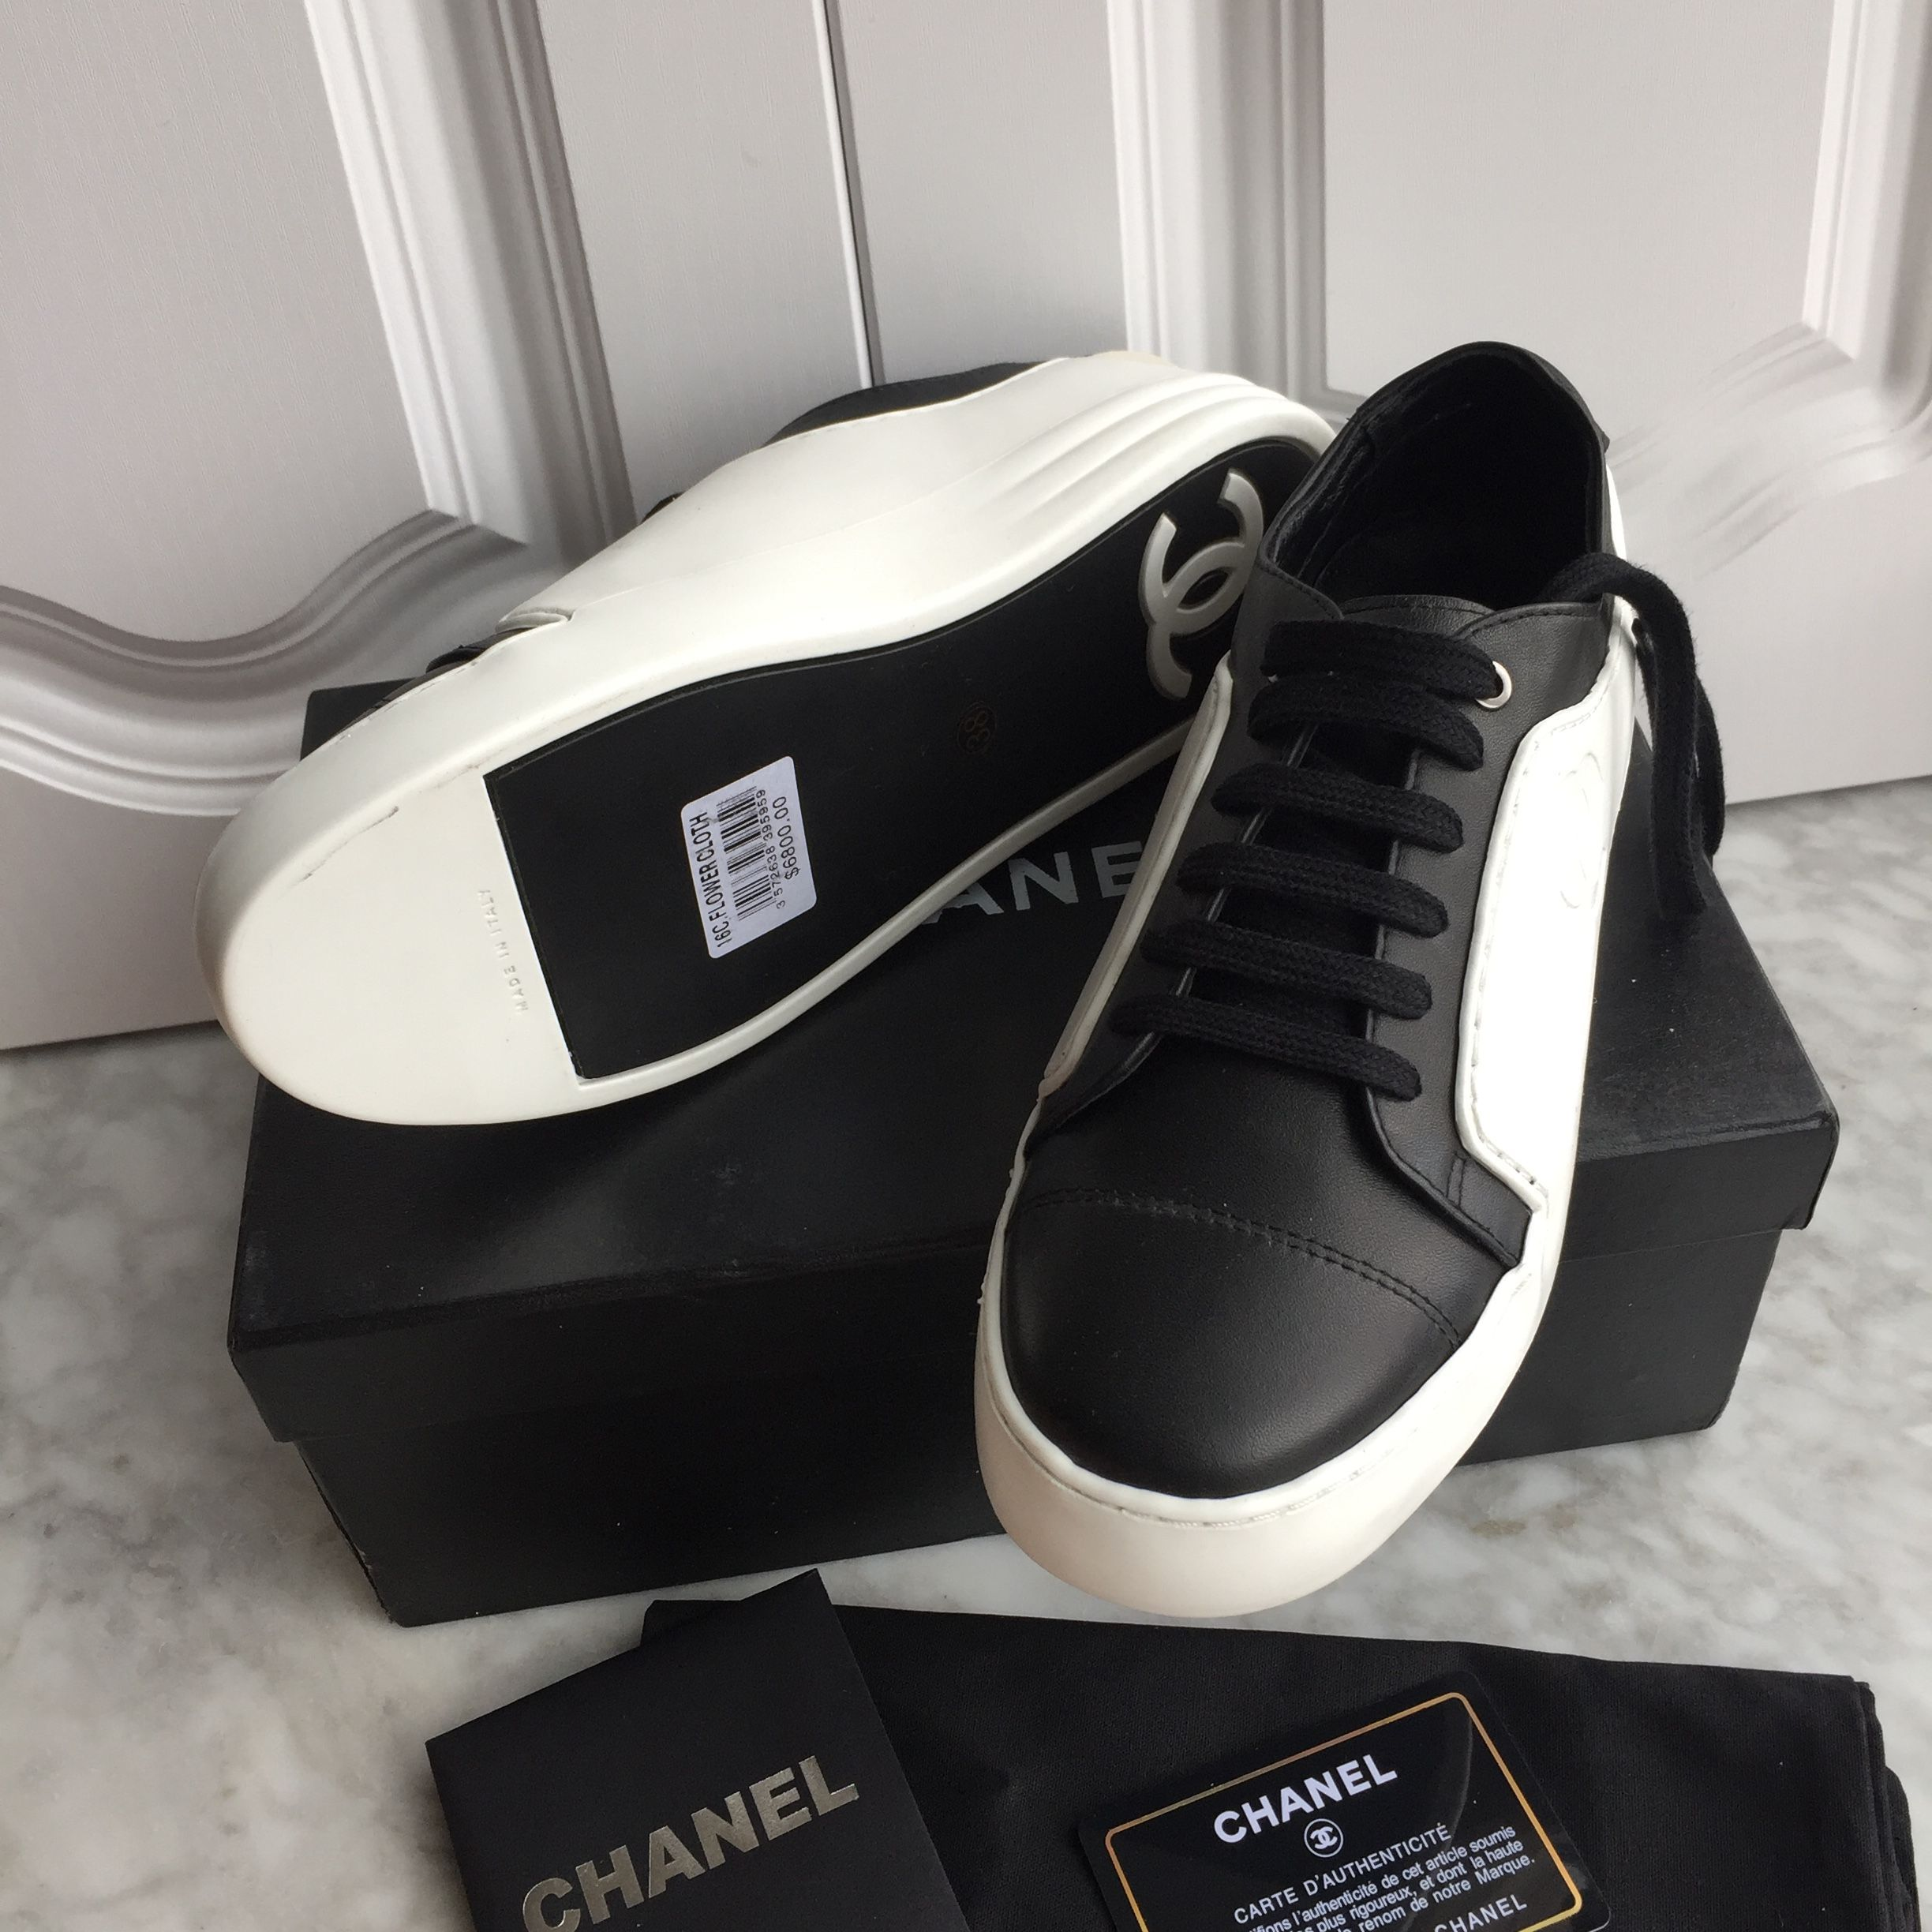 cf214722f4f Chanel woman shoes black white colors sneakers flats  SanukWomensShoes